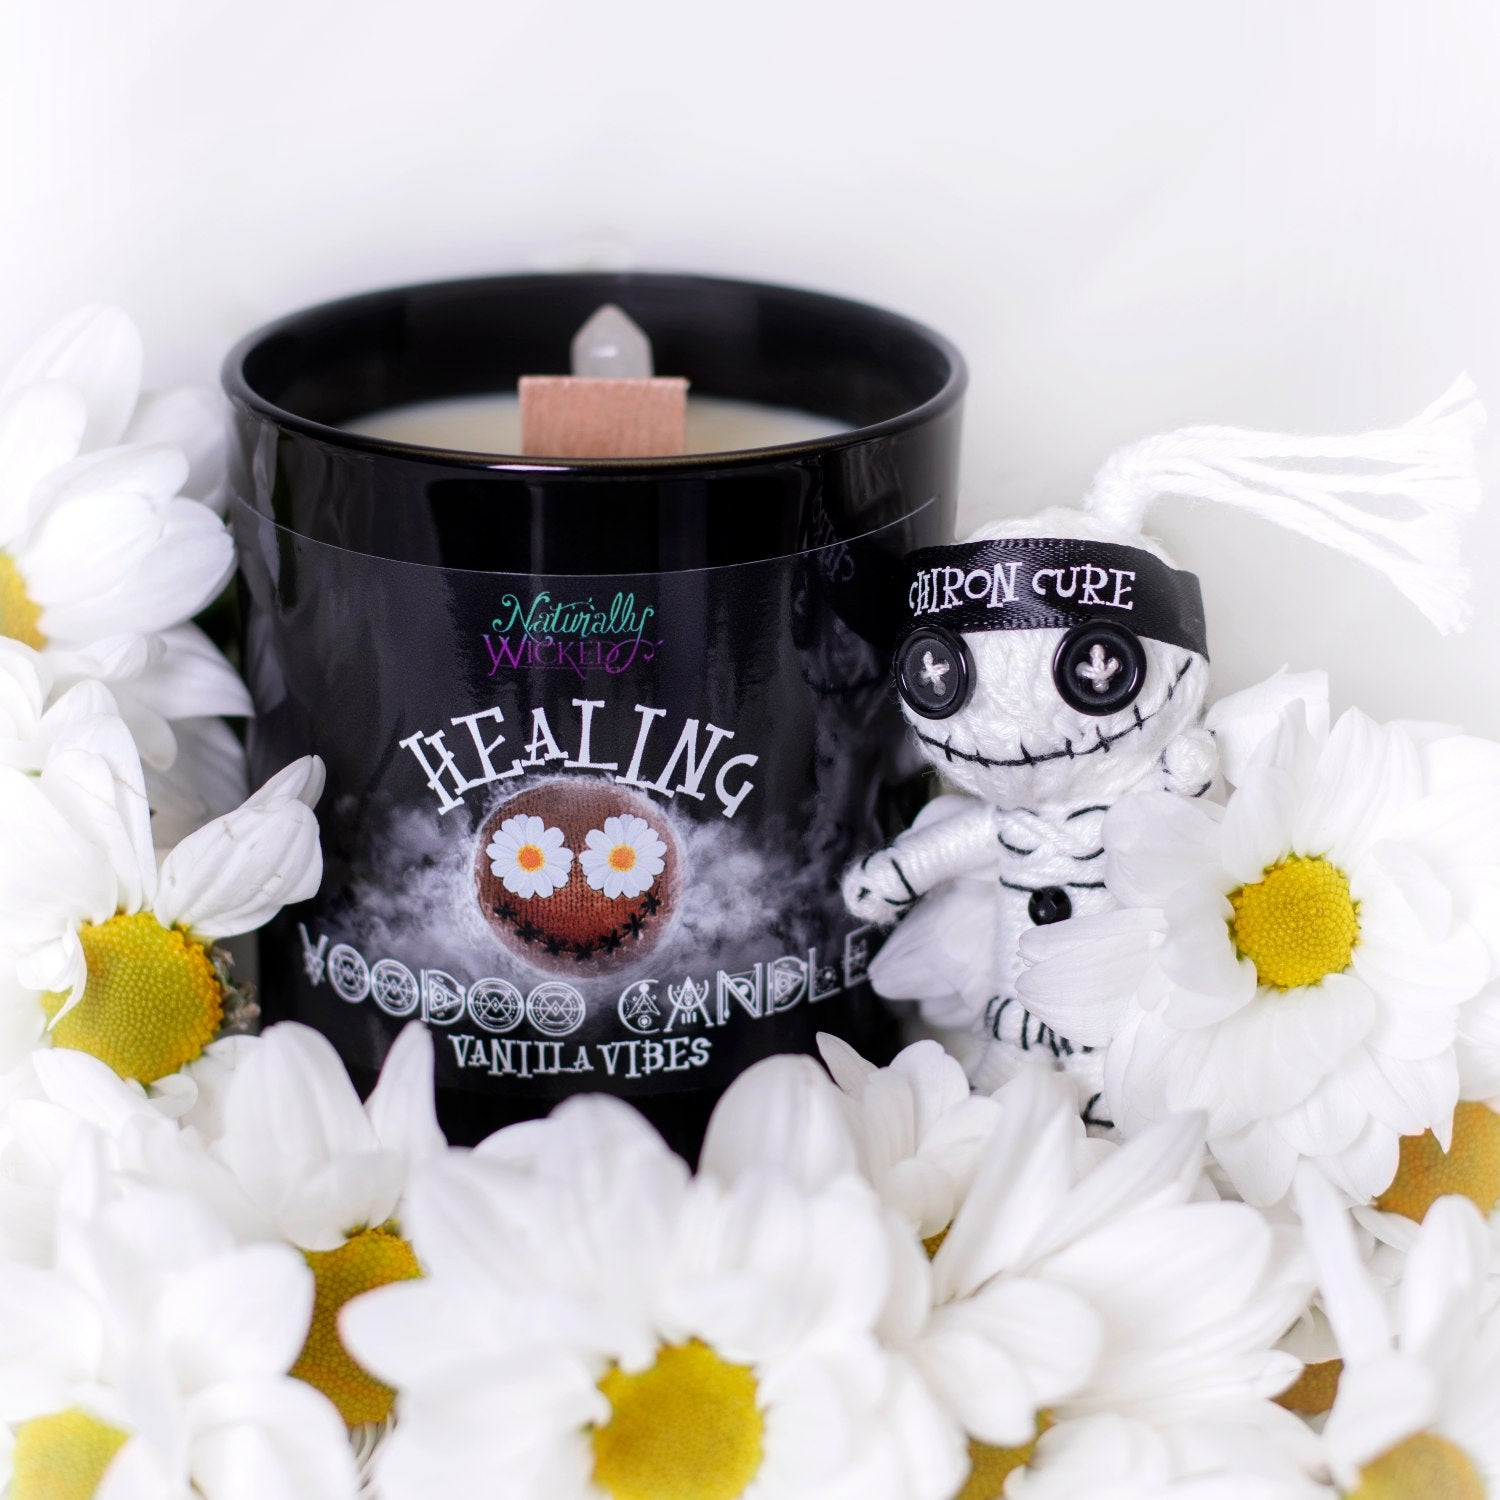 Naturally Wicked Voodoo Healing Spell Candle Entombed With Quartz Crystal Amongst Daisies & Healing Voodoo Doll